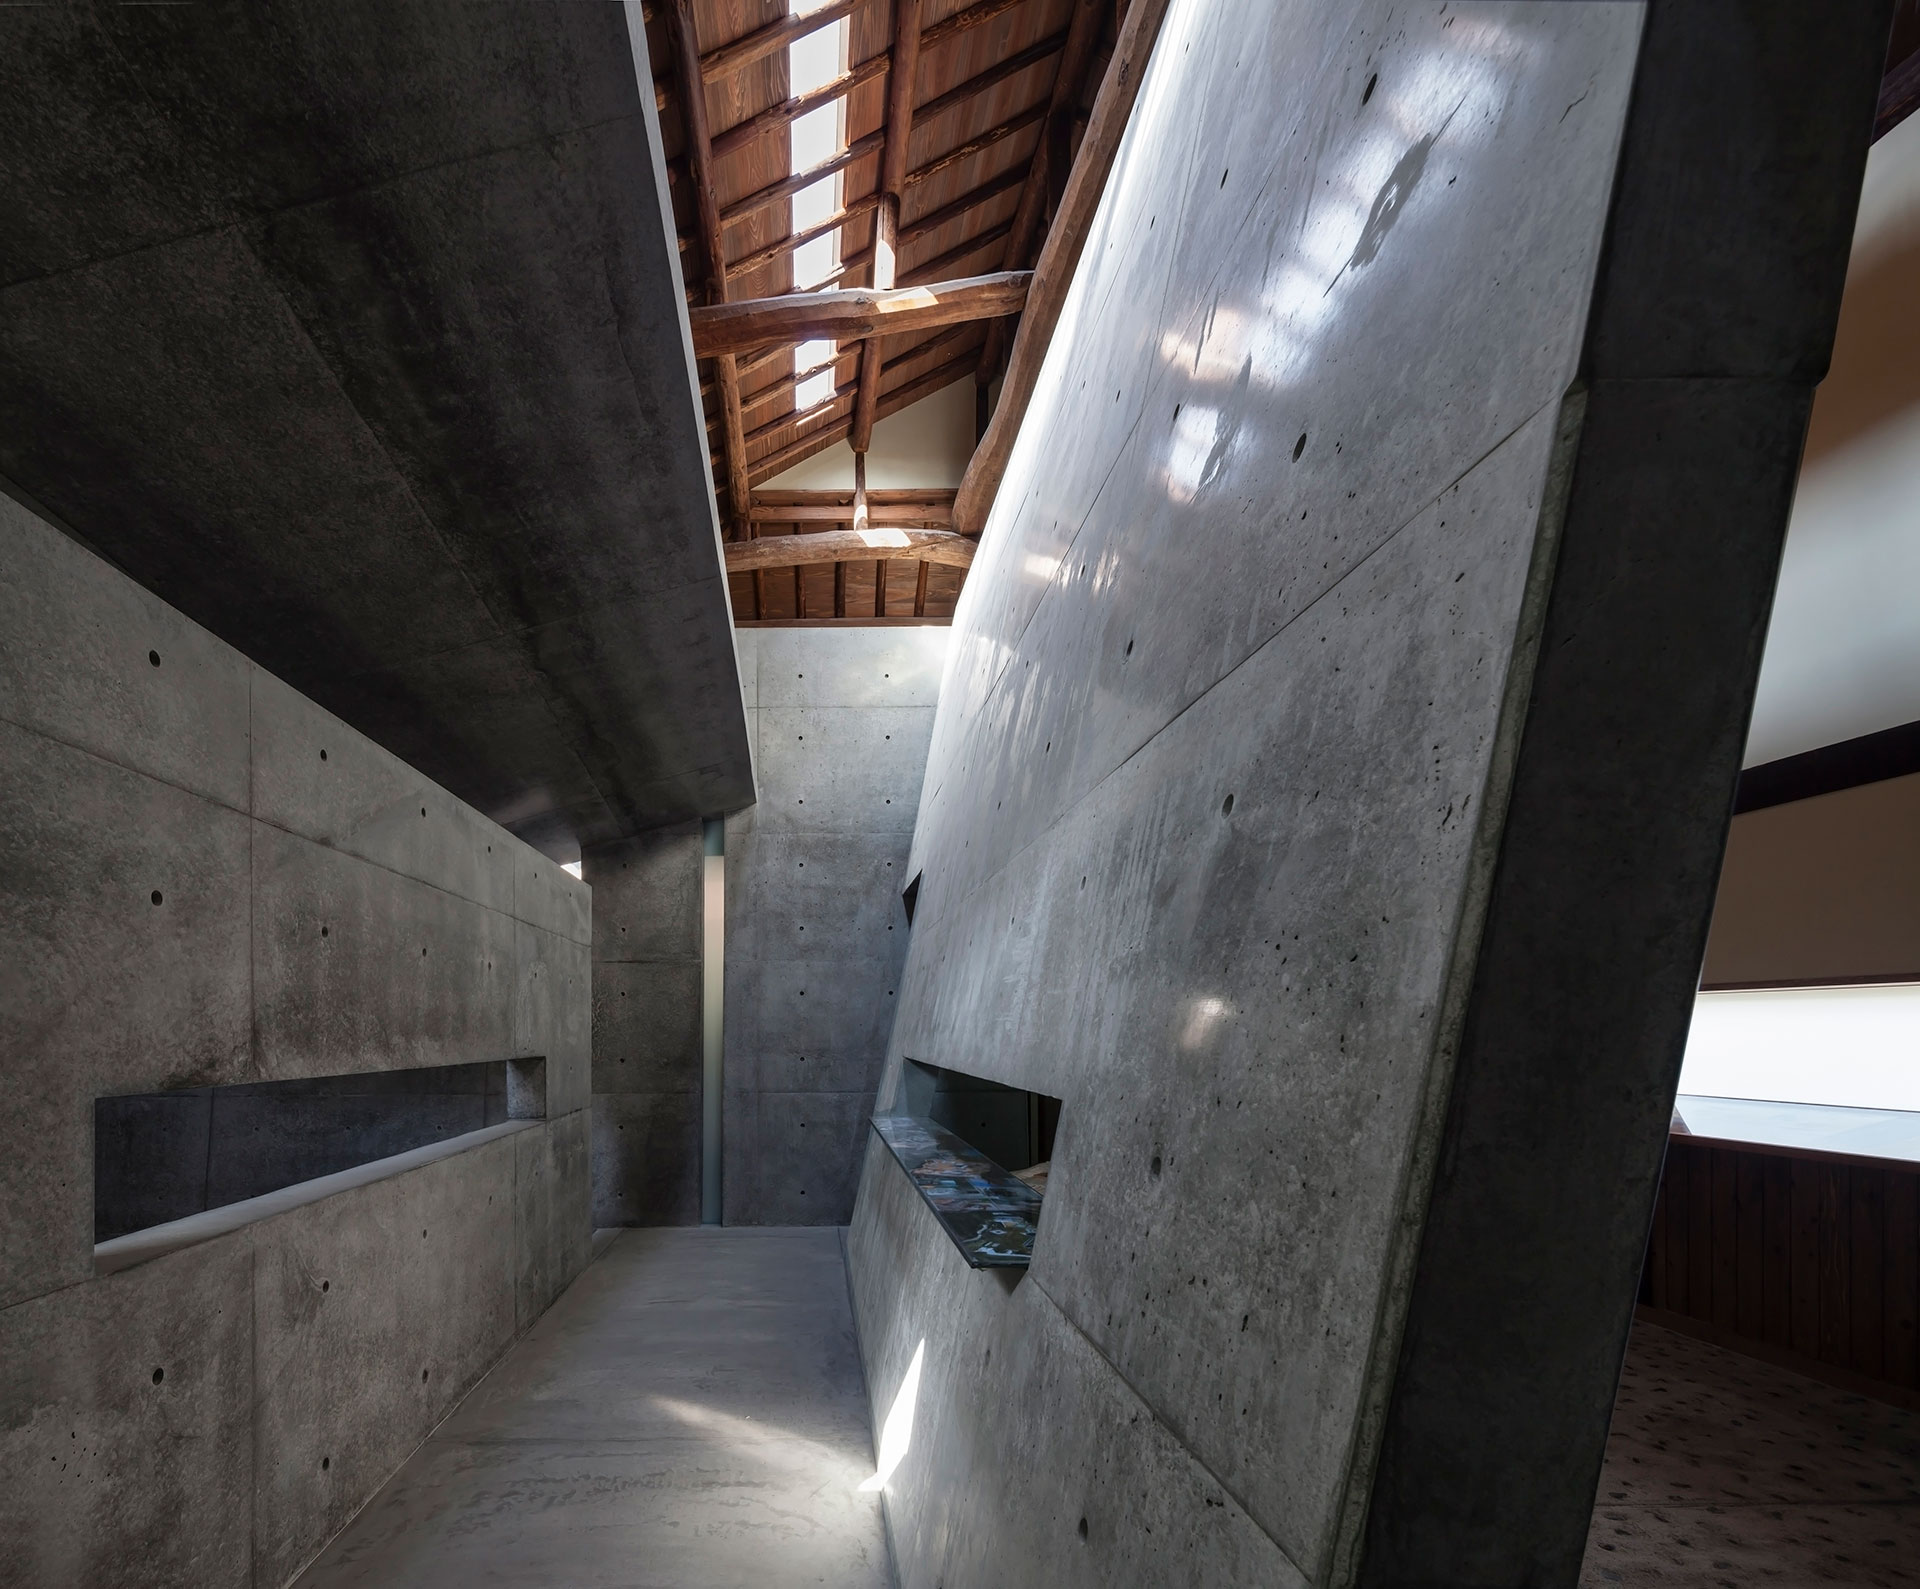 ANDO MUSEUM (2012/2013) 撮影: 小川重雄 「直島にある ANDO MUSEUM は、築100年、木造2階建ての民家の内部にコンクリートのボックスが入れ子状に組み込まれている」 / ANDO MUSEUM (2012/2013) Photo: Shigeo Ogawa 'The Ando Museum in Naoshima is a two-story, 100 year old, wooden house with concrete blocks incorporated inside'